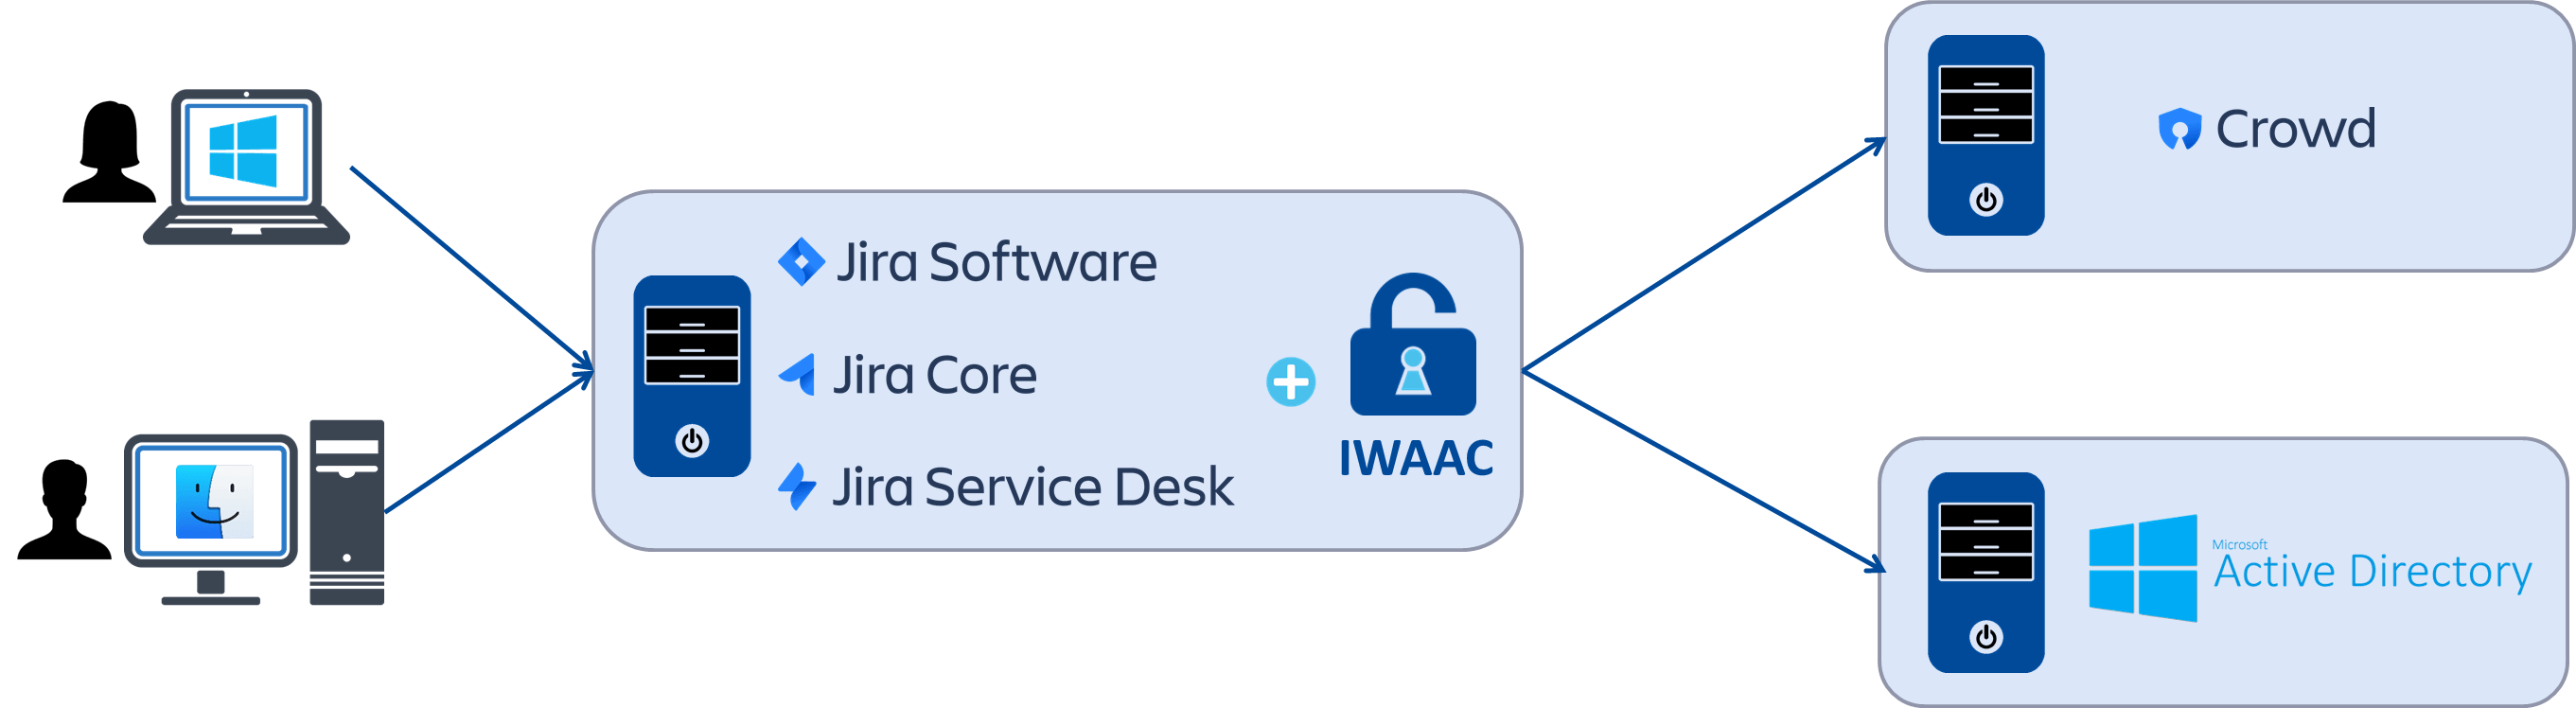 IWAAC Kerberos SSO Installation Guide for Jira | Cleito